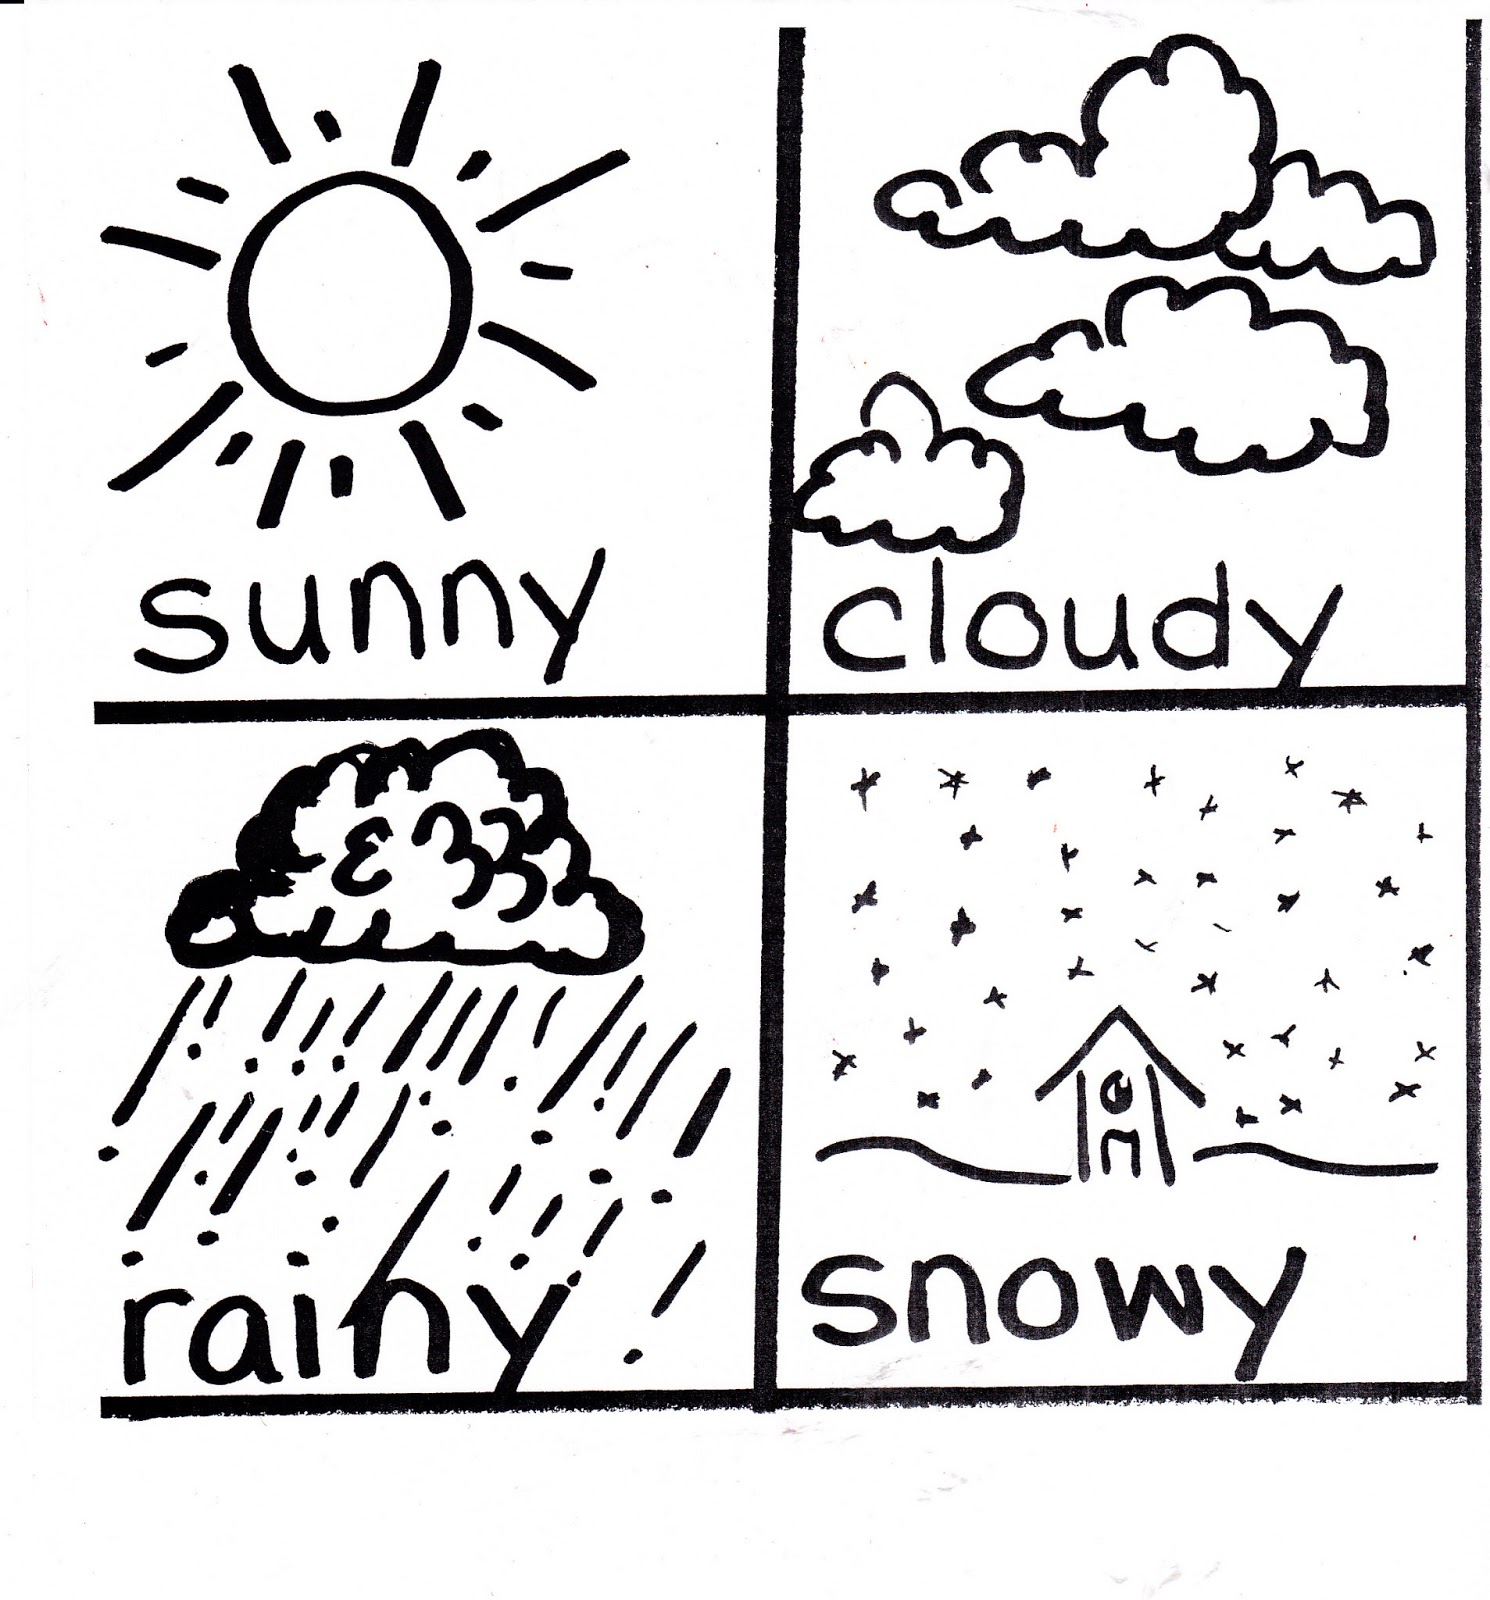 Metamora Community Preschool: Weather Words